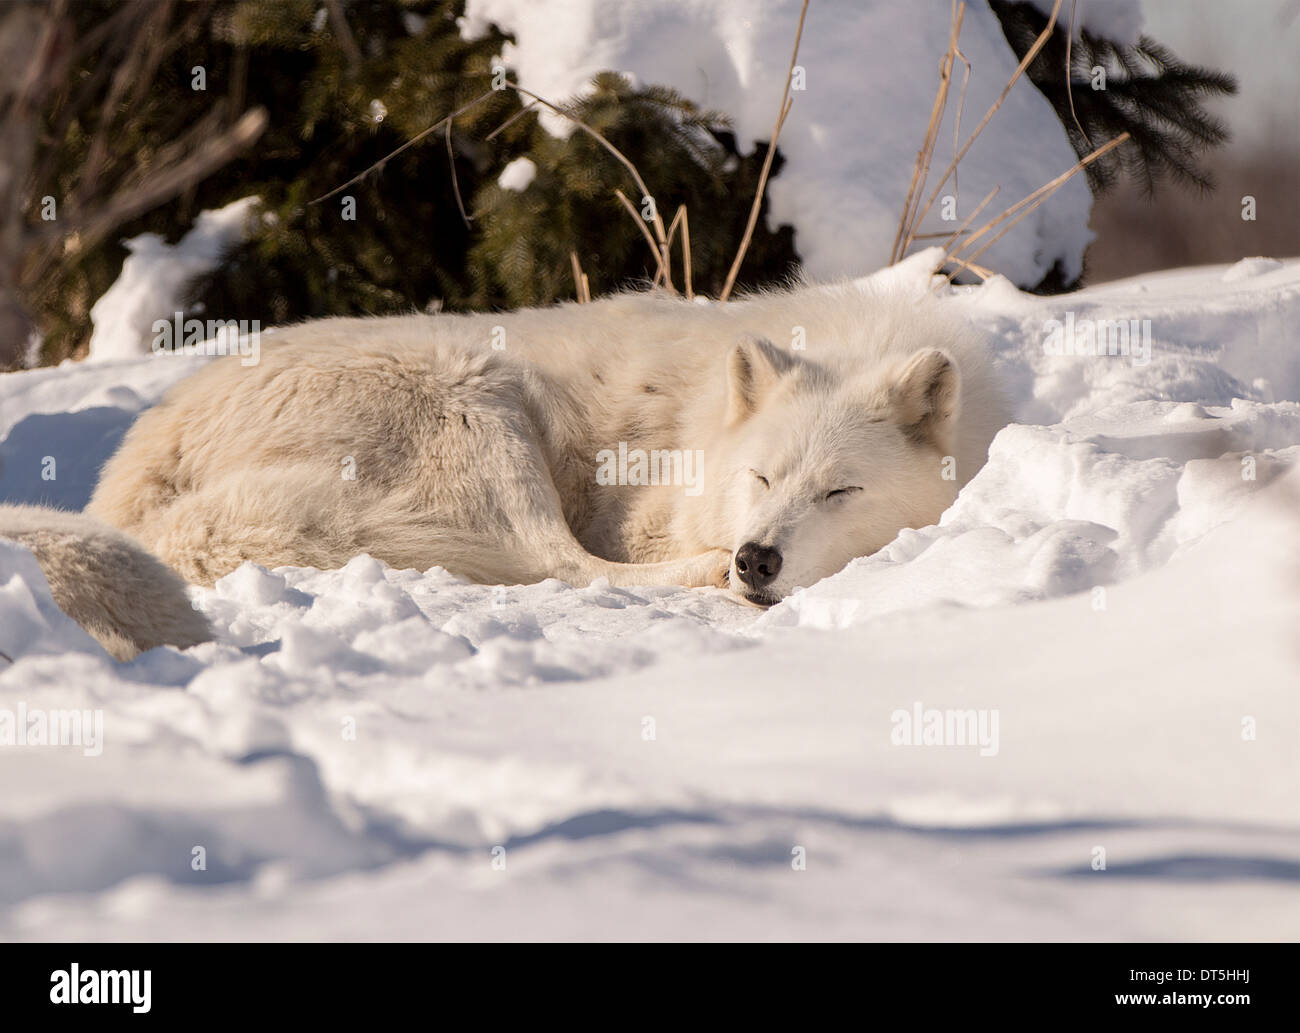 white-wolf-sleeping-in-the-snow-on-a-bri